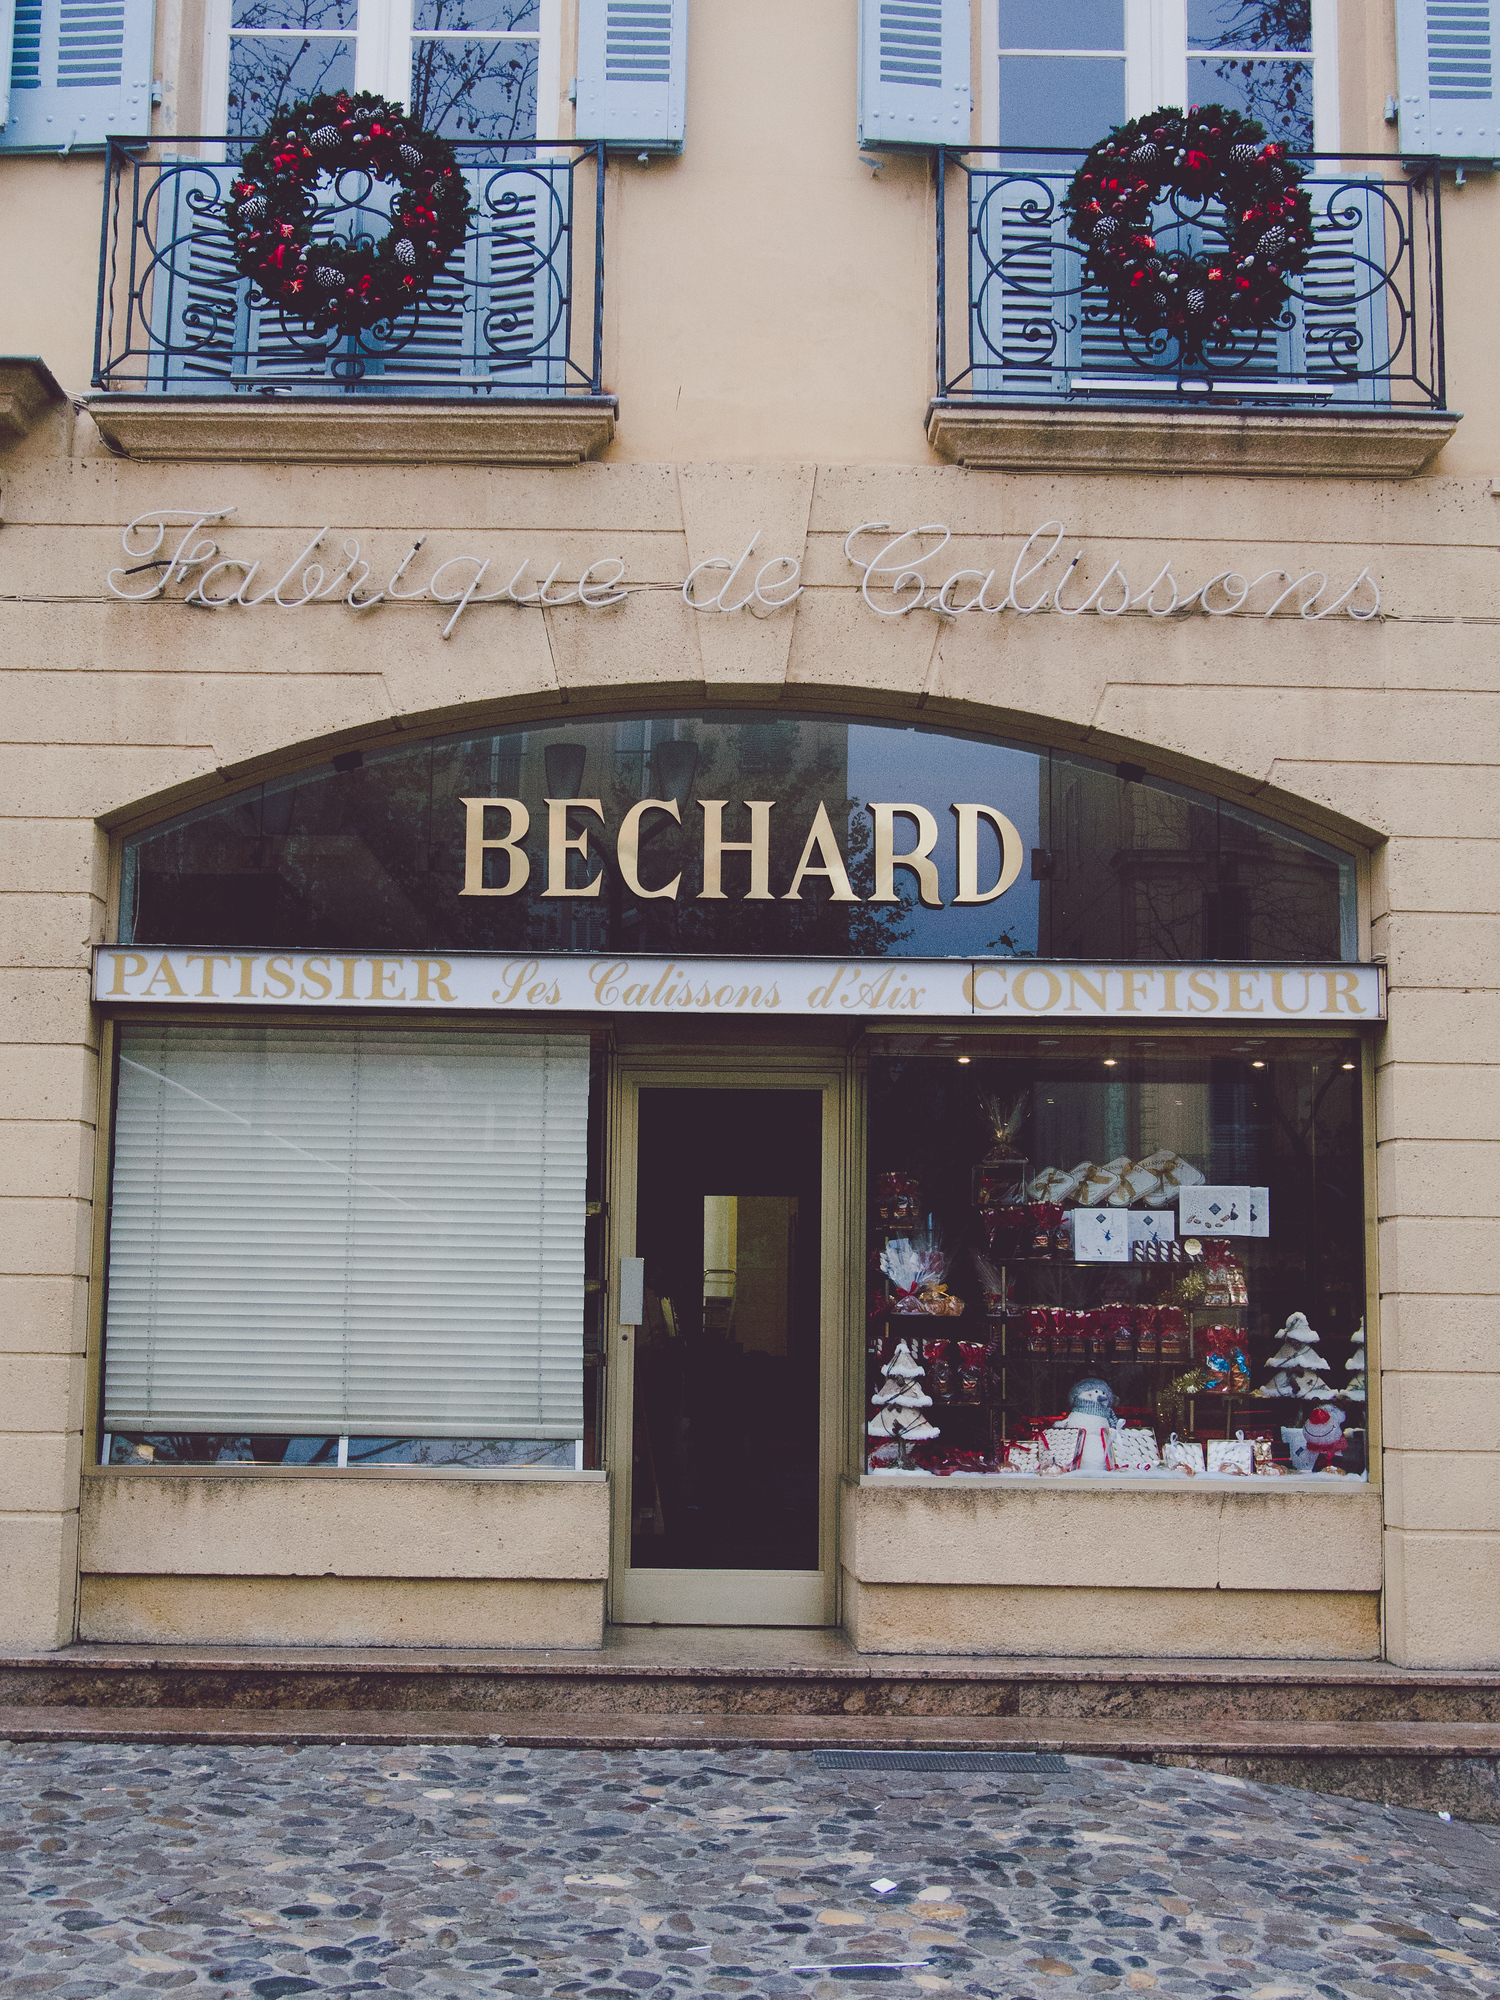 Bechard is one of the best bakeries in Aix en Provence, discover what other patisseries in Aix en Provence you must visit!